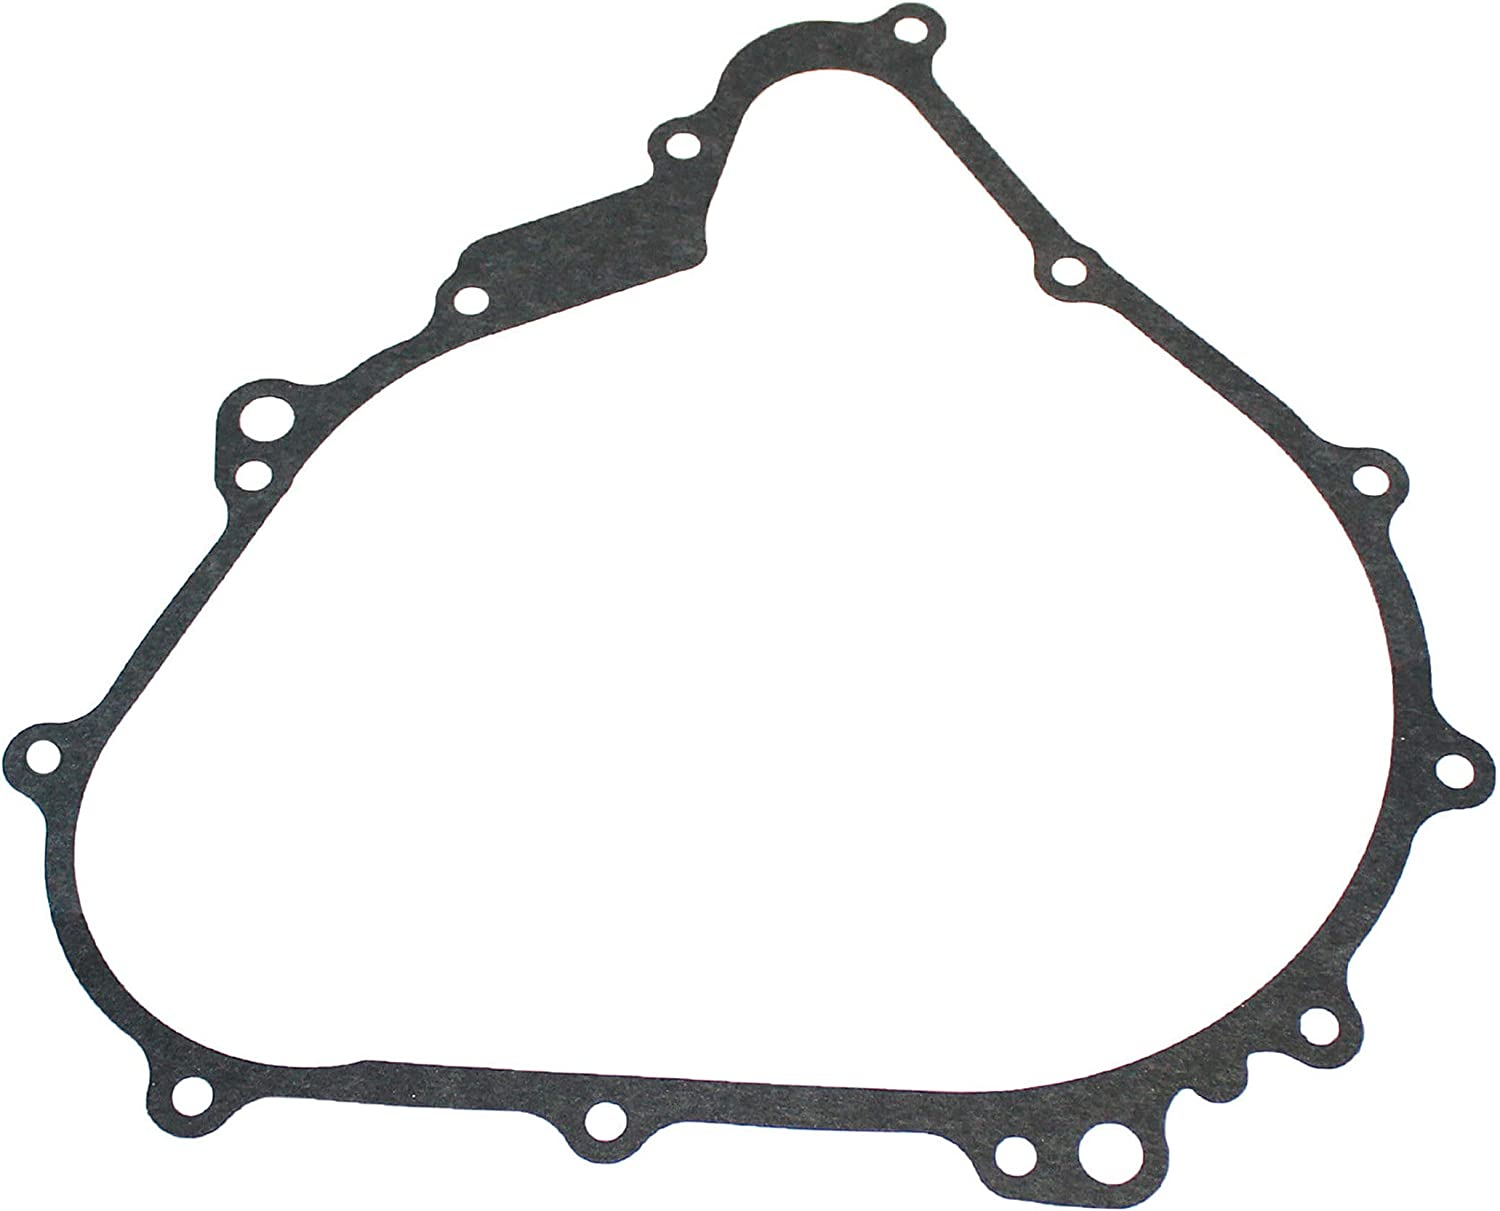 Aitook Stator Gasket Compatible With Max 56% OFF Yamaha Milwaukee Mall 5GH-15451-00-00 OEM